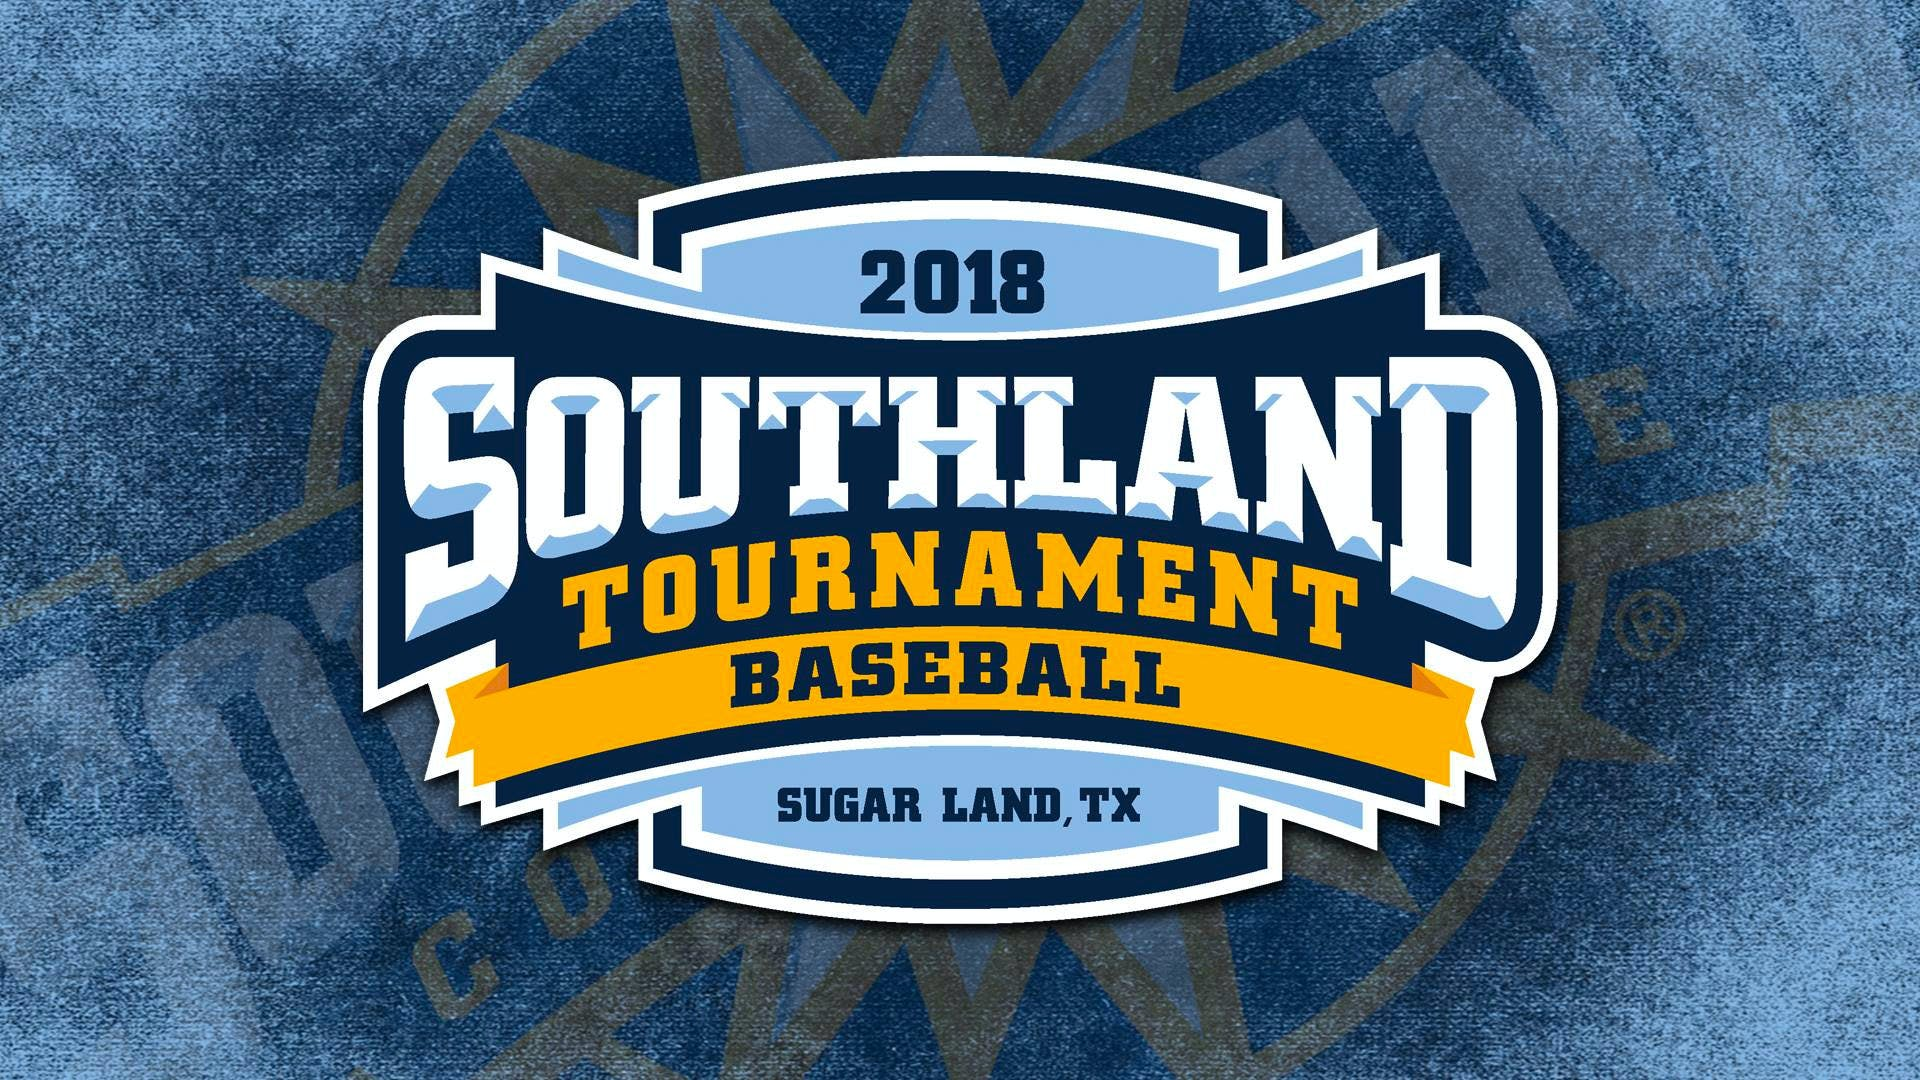 southland-tournament-baseball-sugar-land-tx